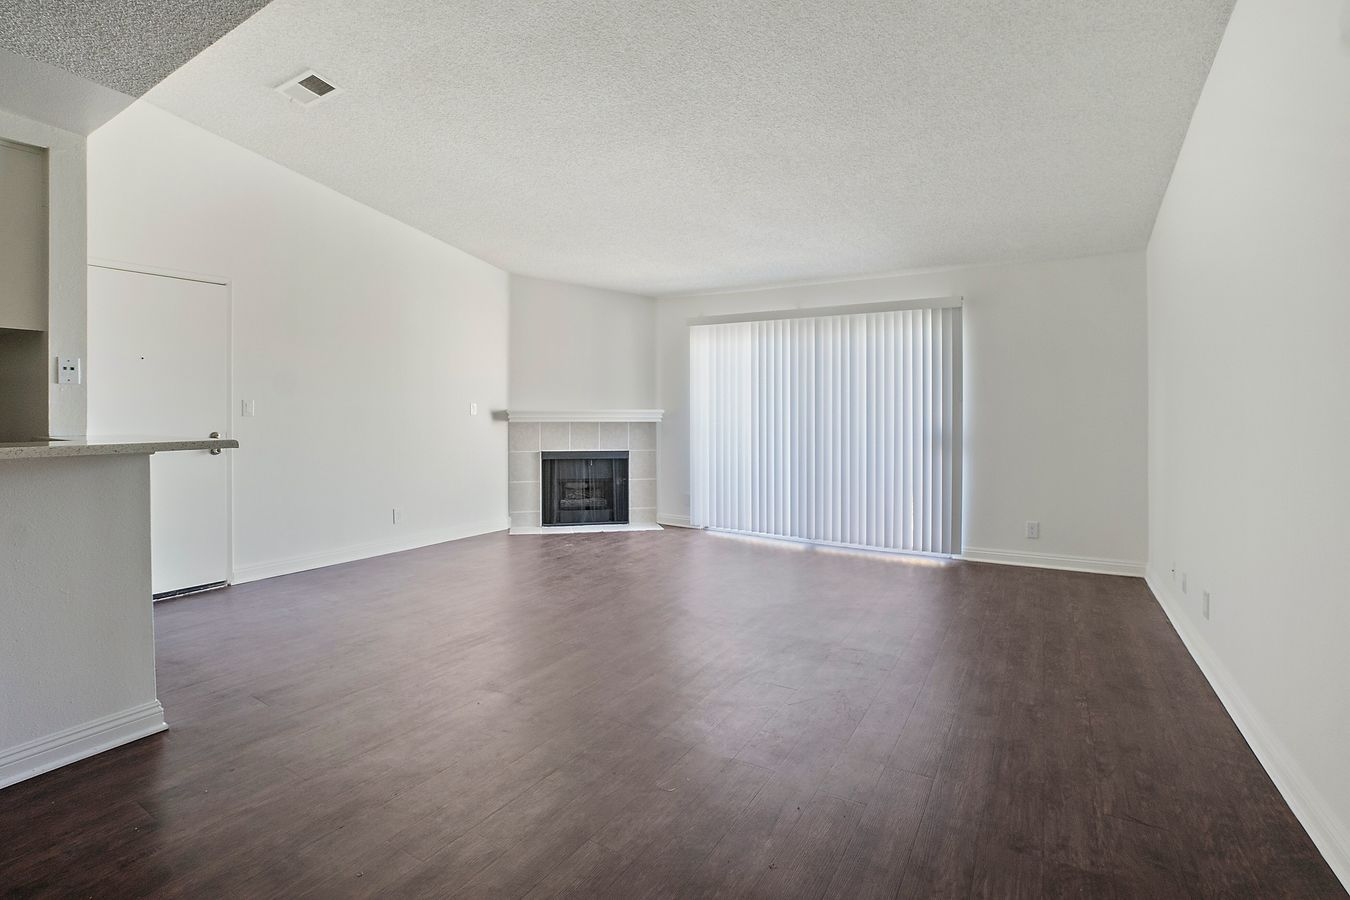 1 Bedroom 1 Bathroom Apartment for rent at The Woodside Apartments in Northridge, CA